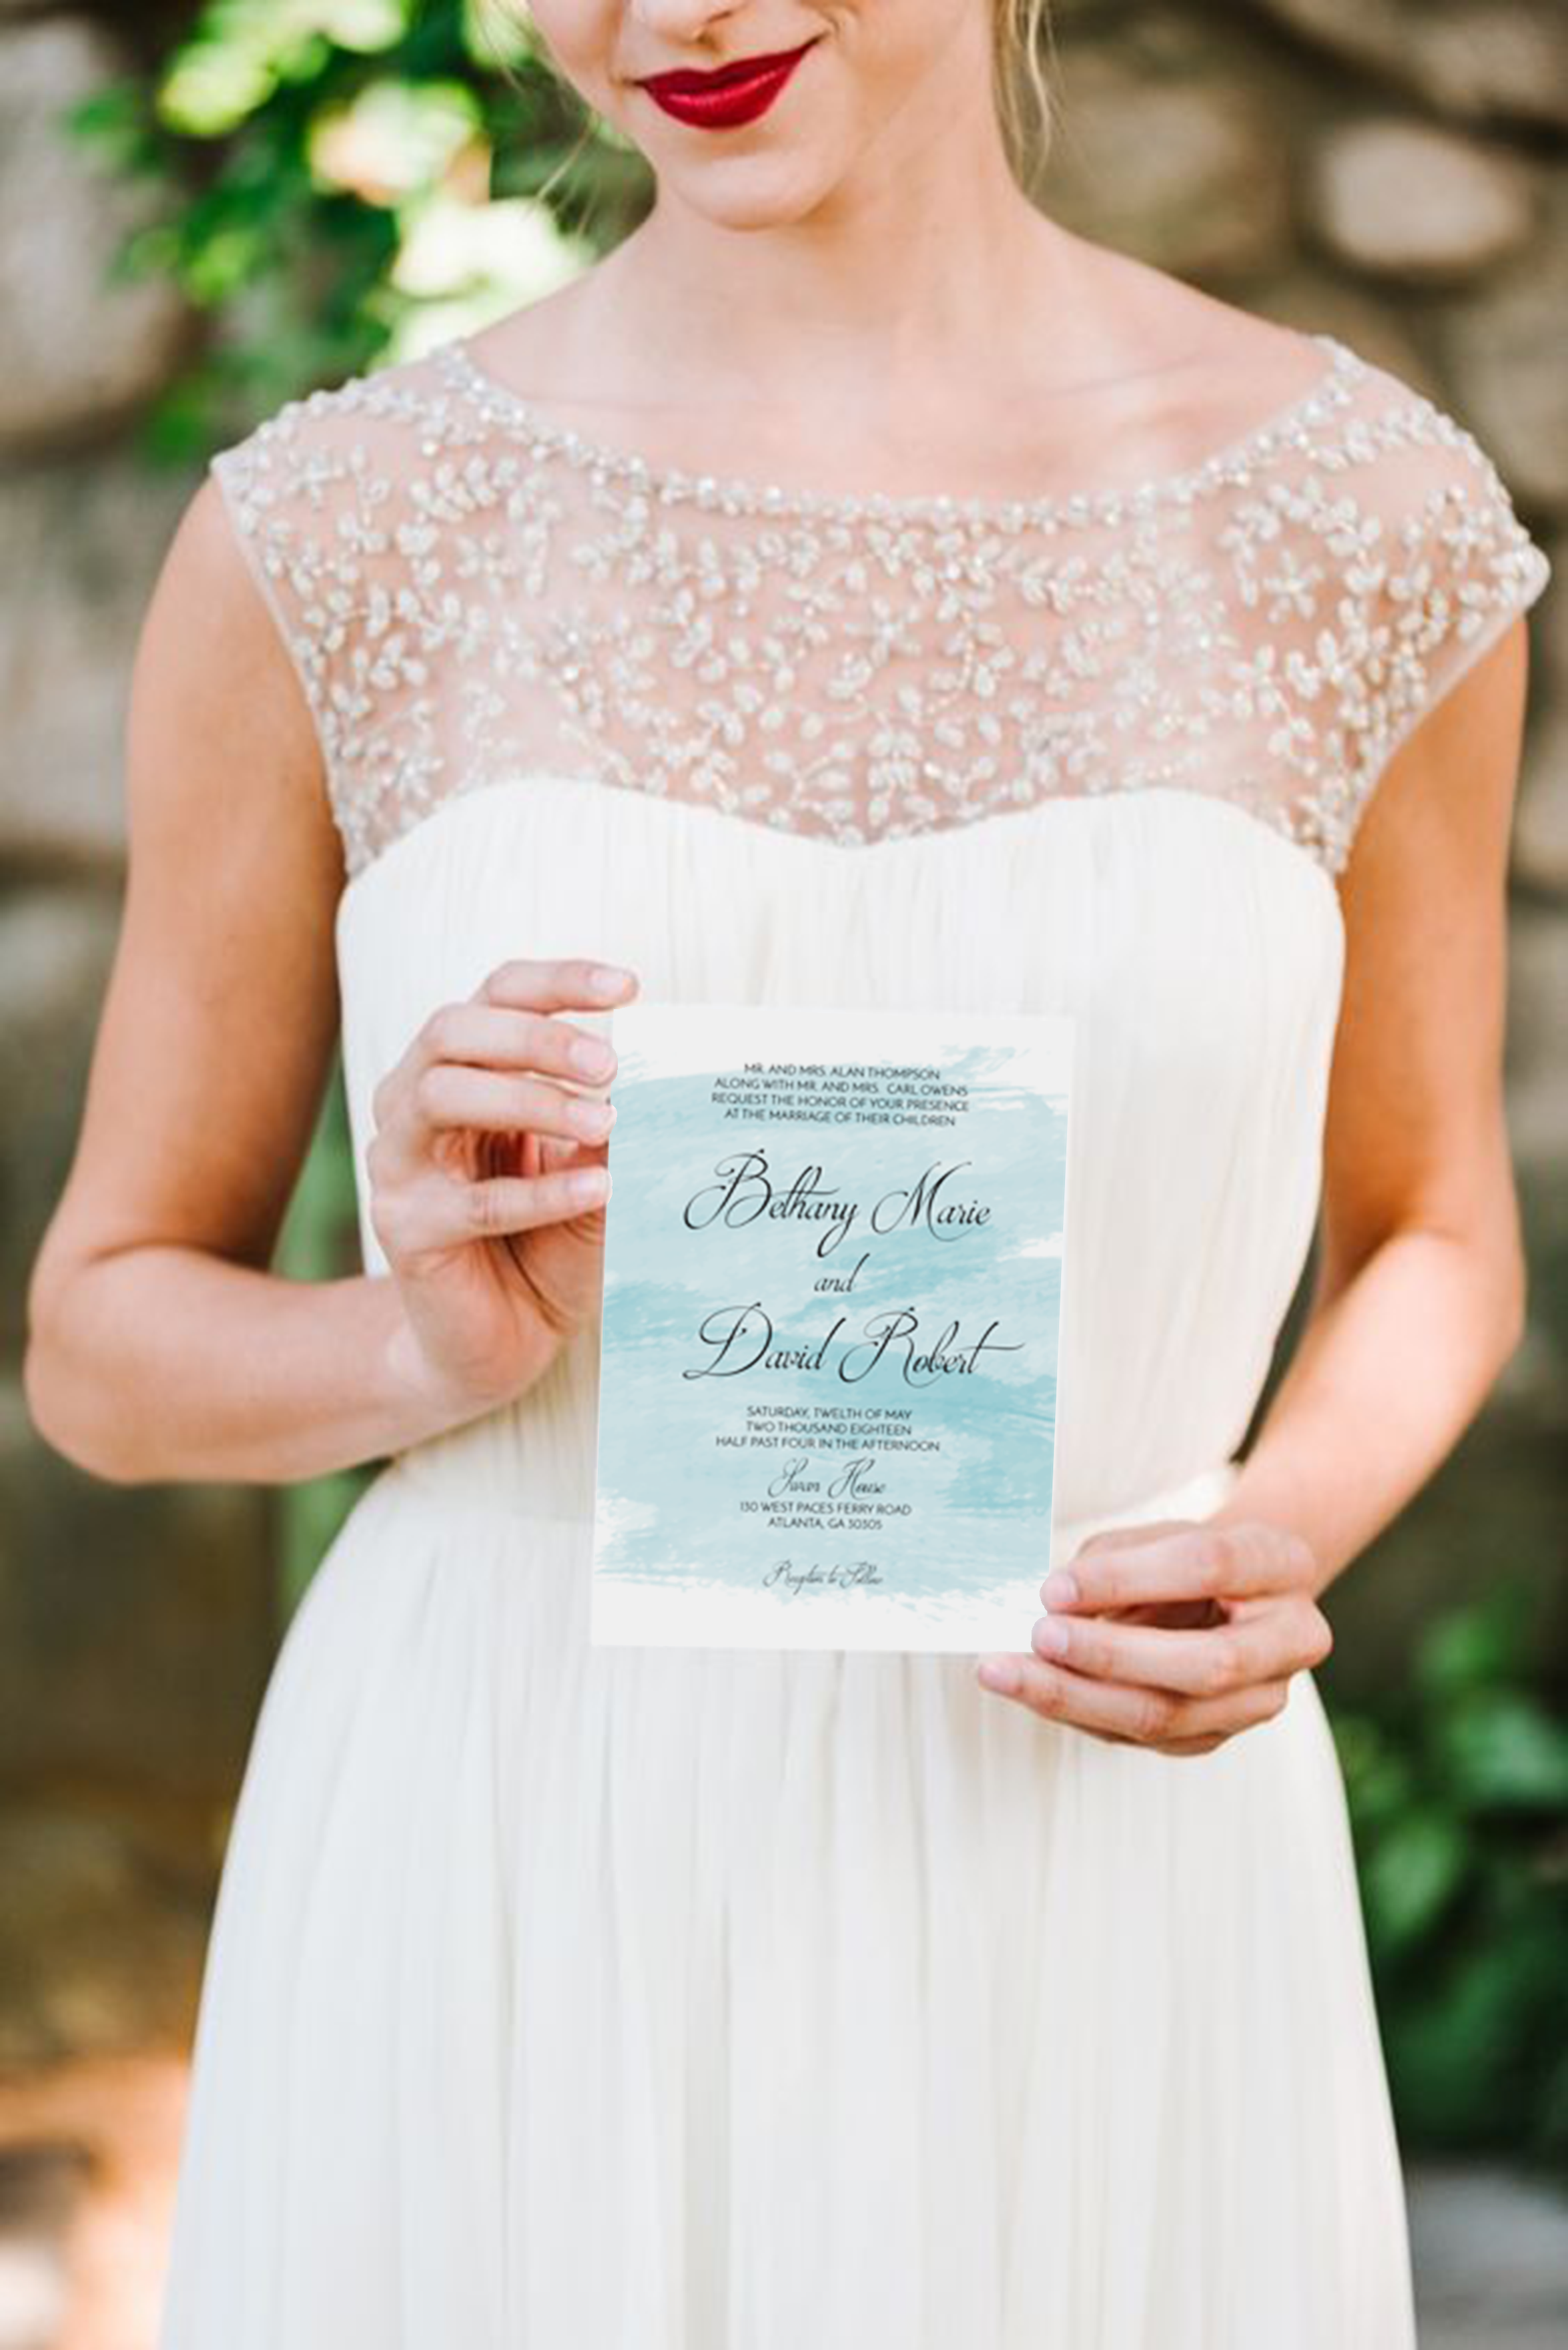 WEDDING INVITATION with bride.png